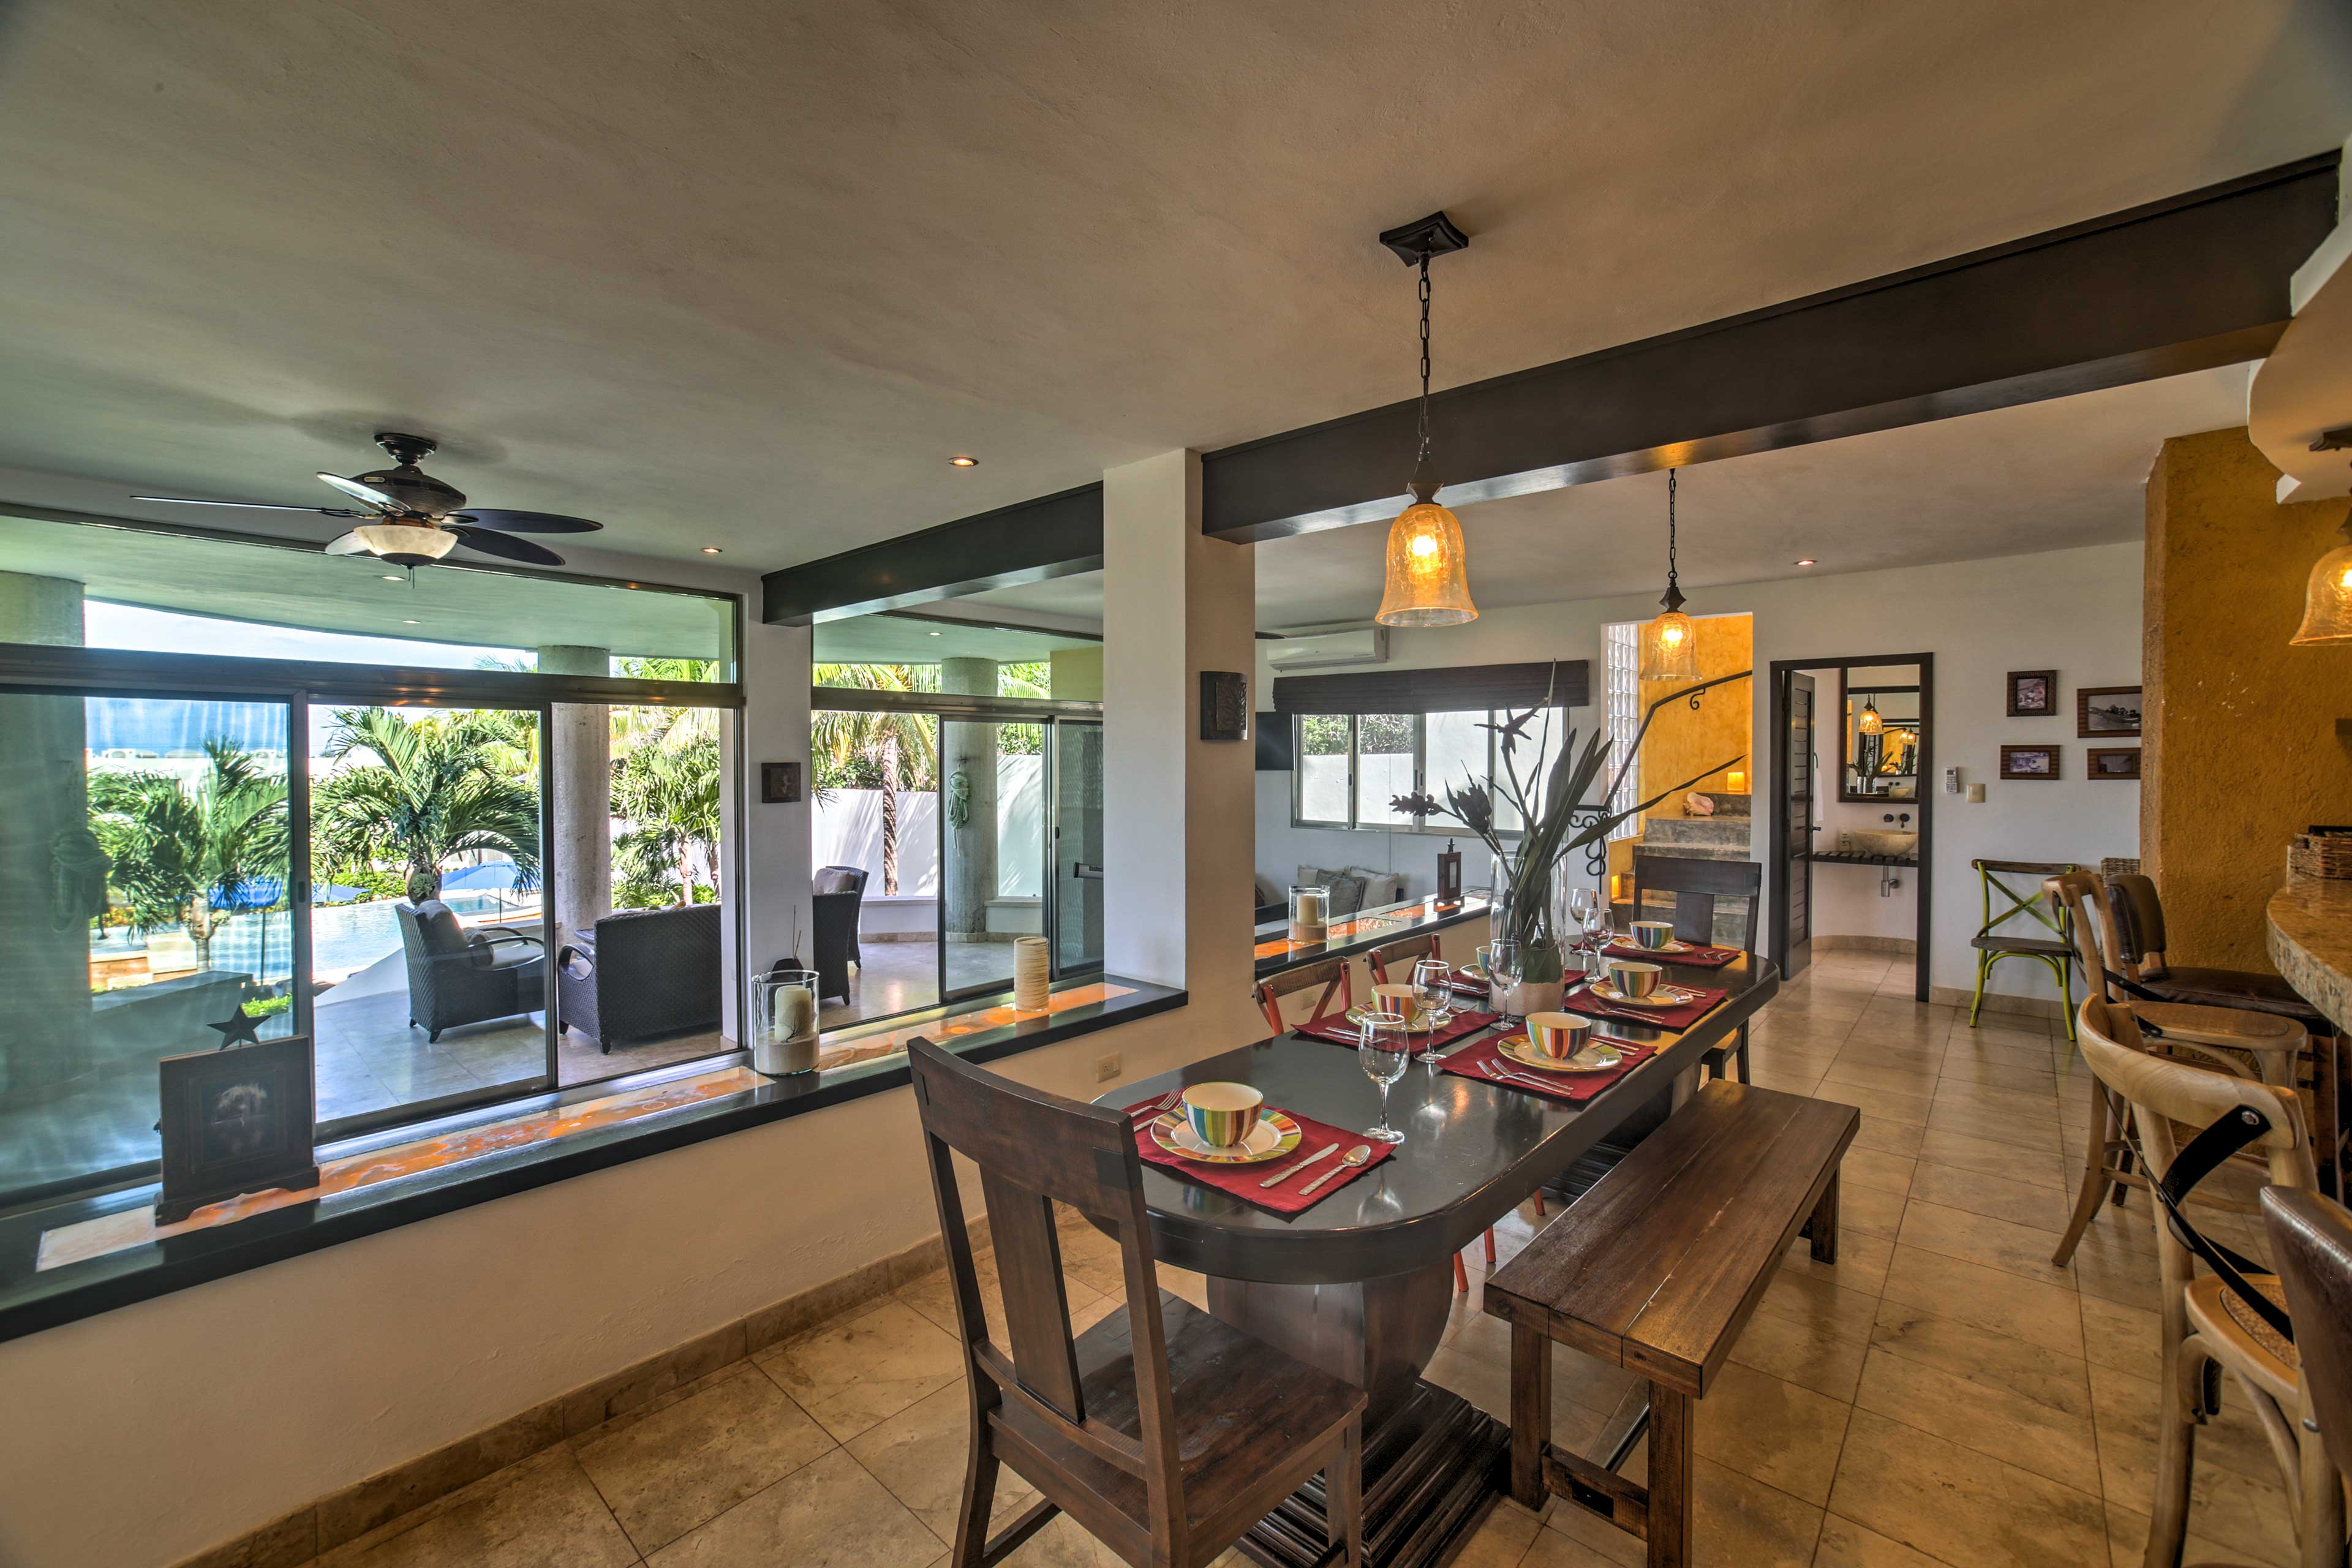 Pull up a chair to enjoy a meal together in the main villa.